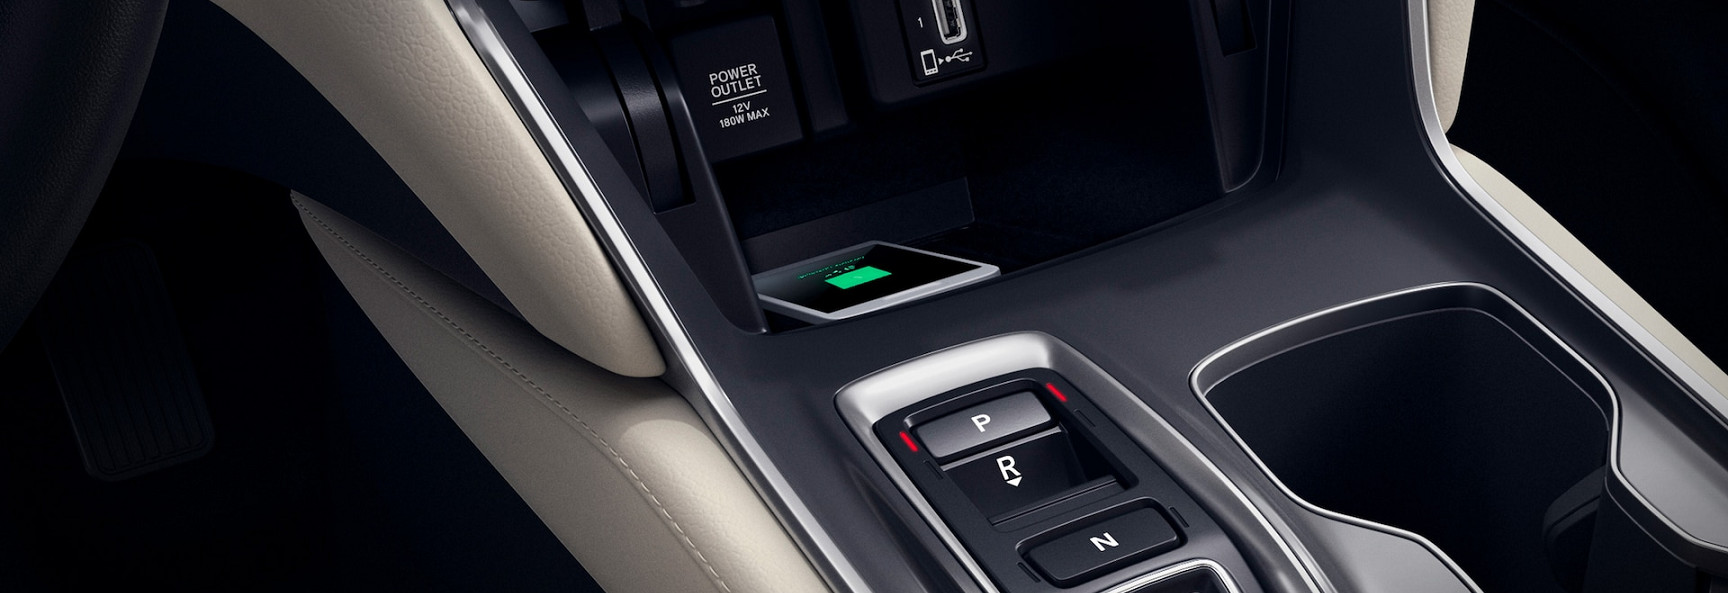 2020 Accord Wireless Charger